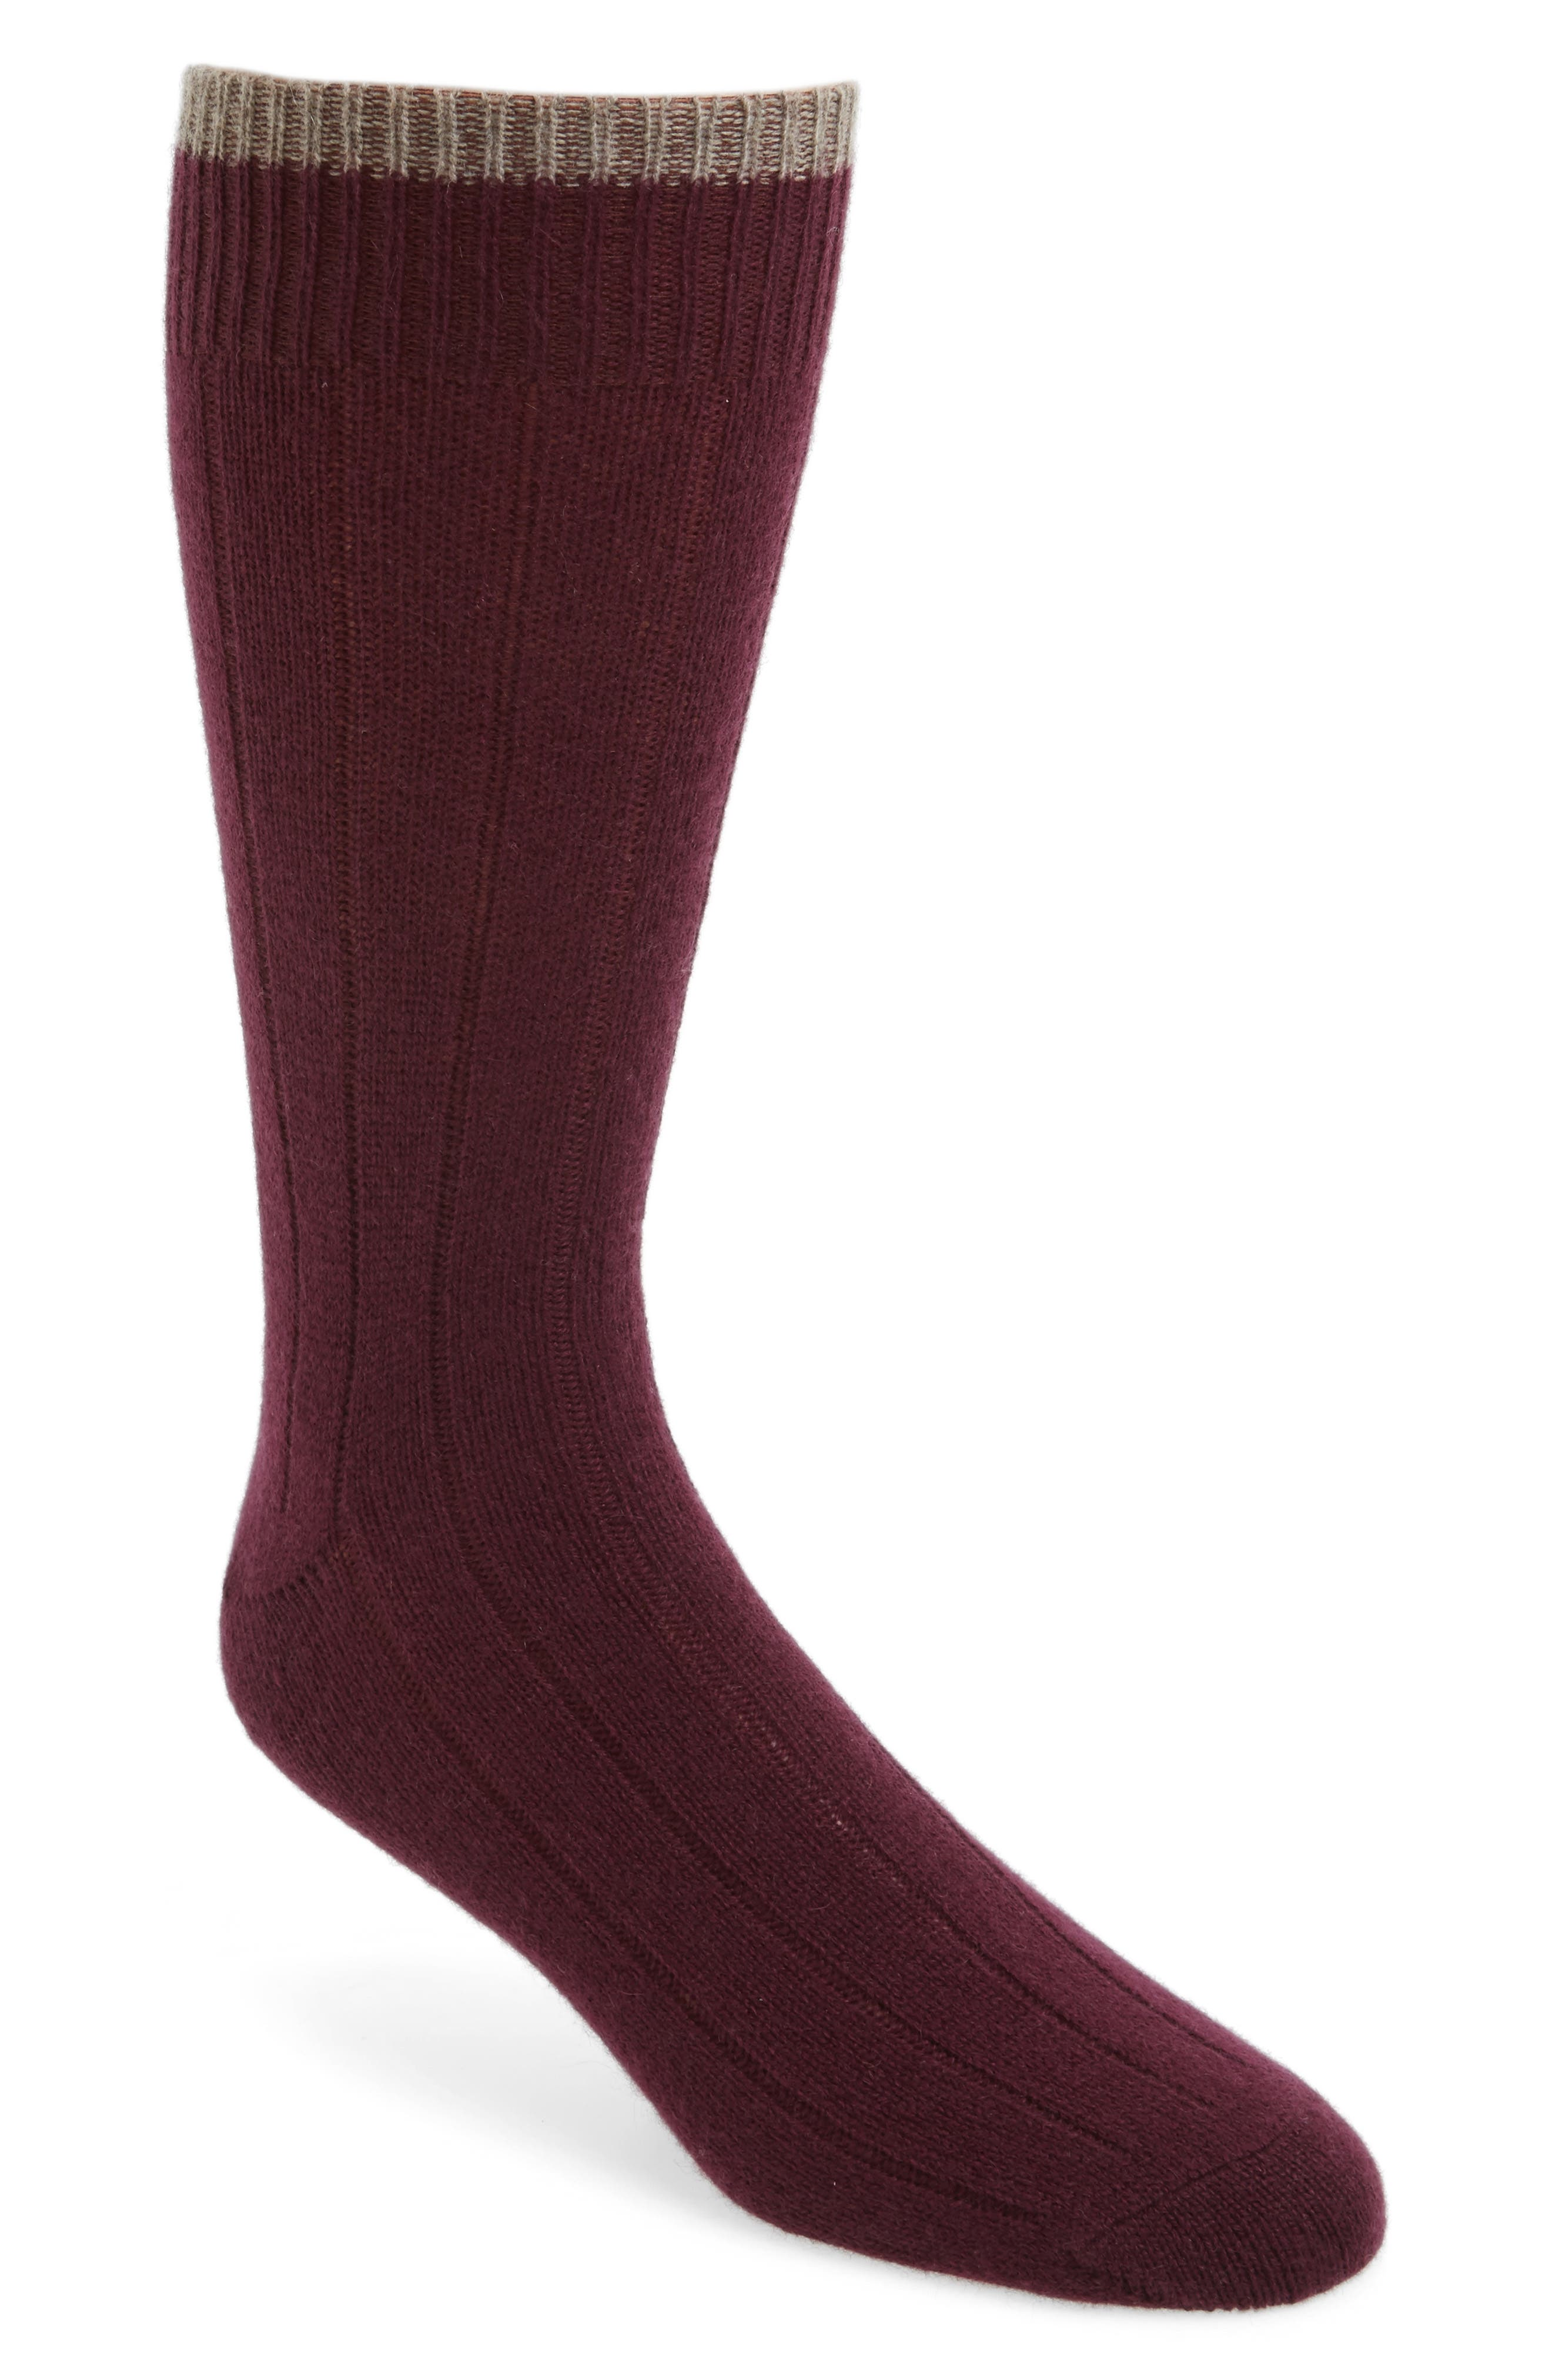 Cashmere Blend Socks When it comes to the utmost in luxury, there are few materials that rival cashmere wool. The only problem, however, is that cashmere can sometimes come with a pretty hefty price tag, which renders it an impossible luxury for many consumers.